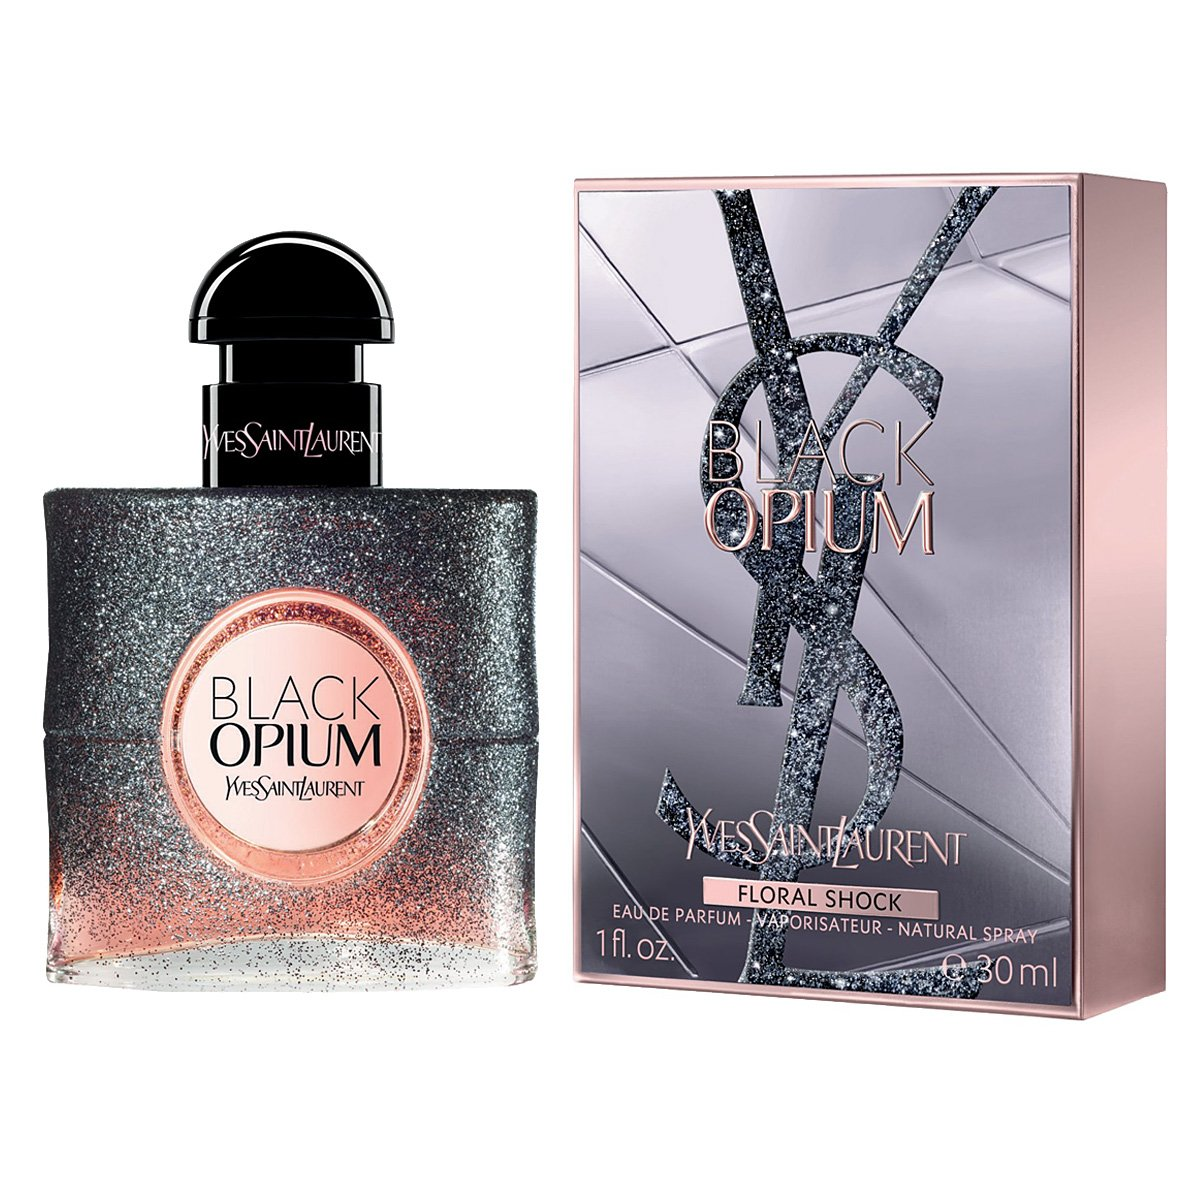 Yves Saint Laurent - Black Opium Floral Shock